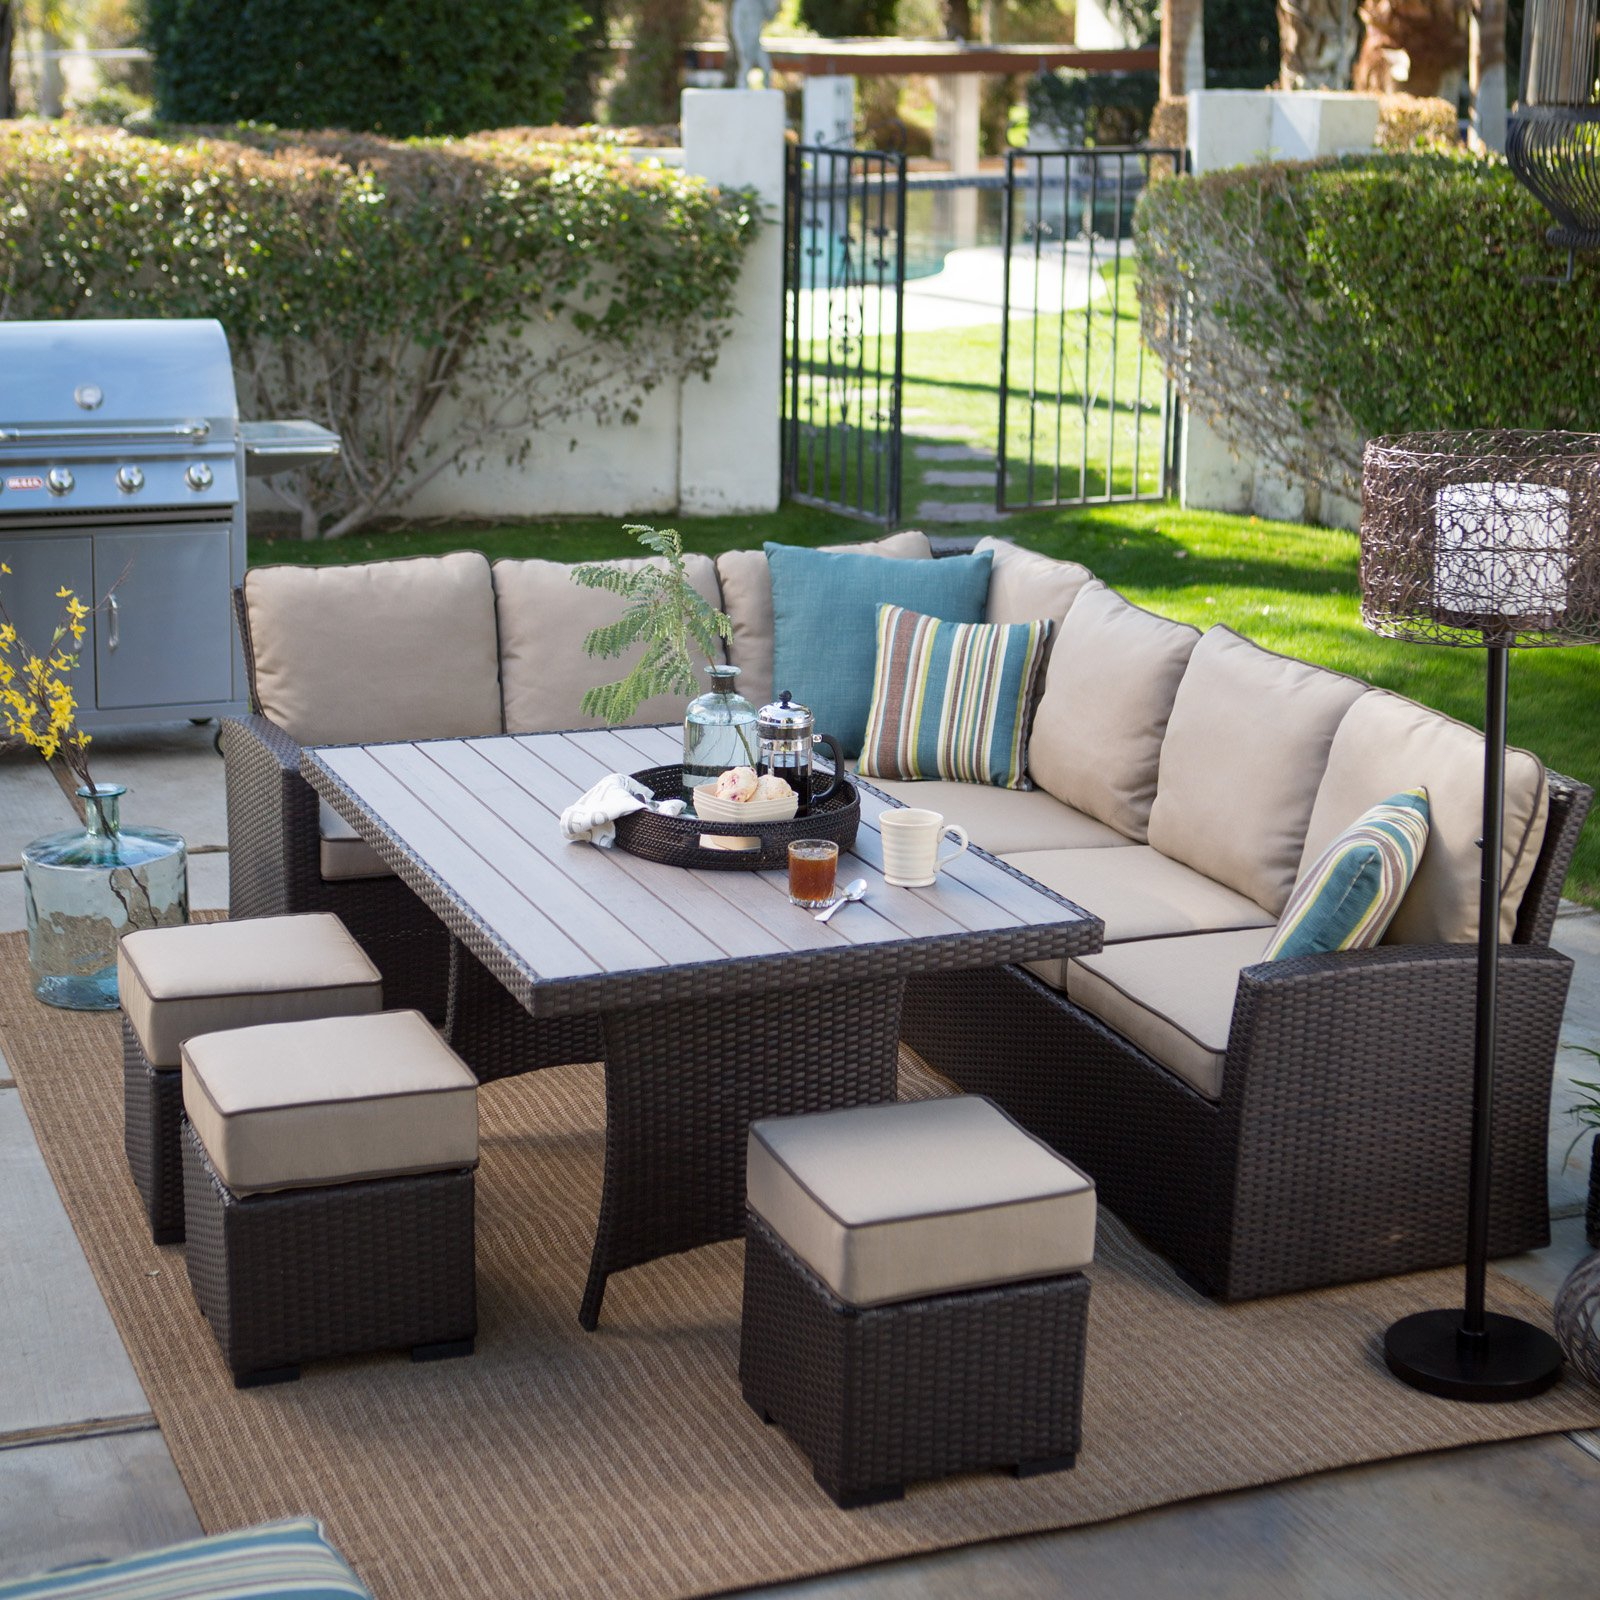 Belham Living Monticello All Weather Wicker Sofa Sectional Patio Dining Set    Walmart.com